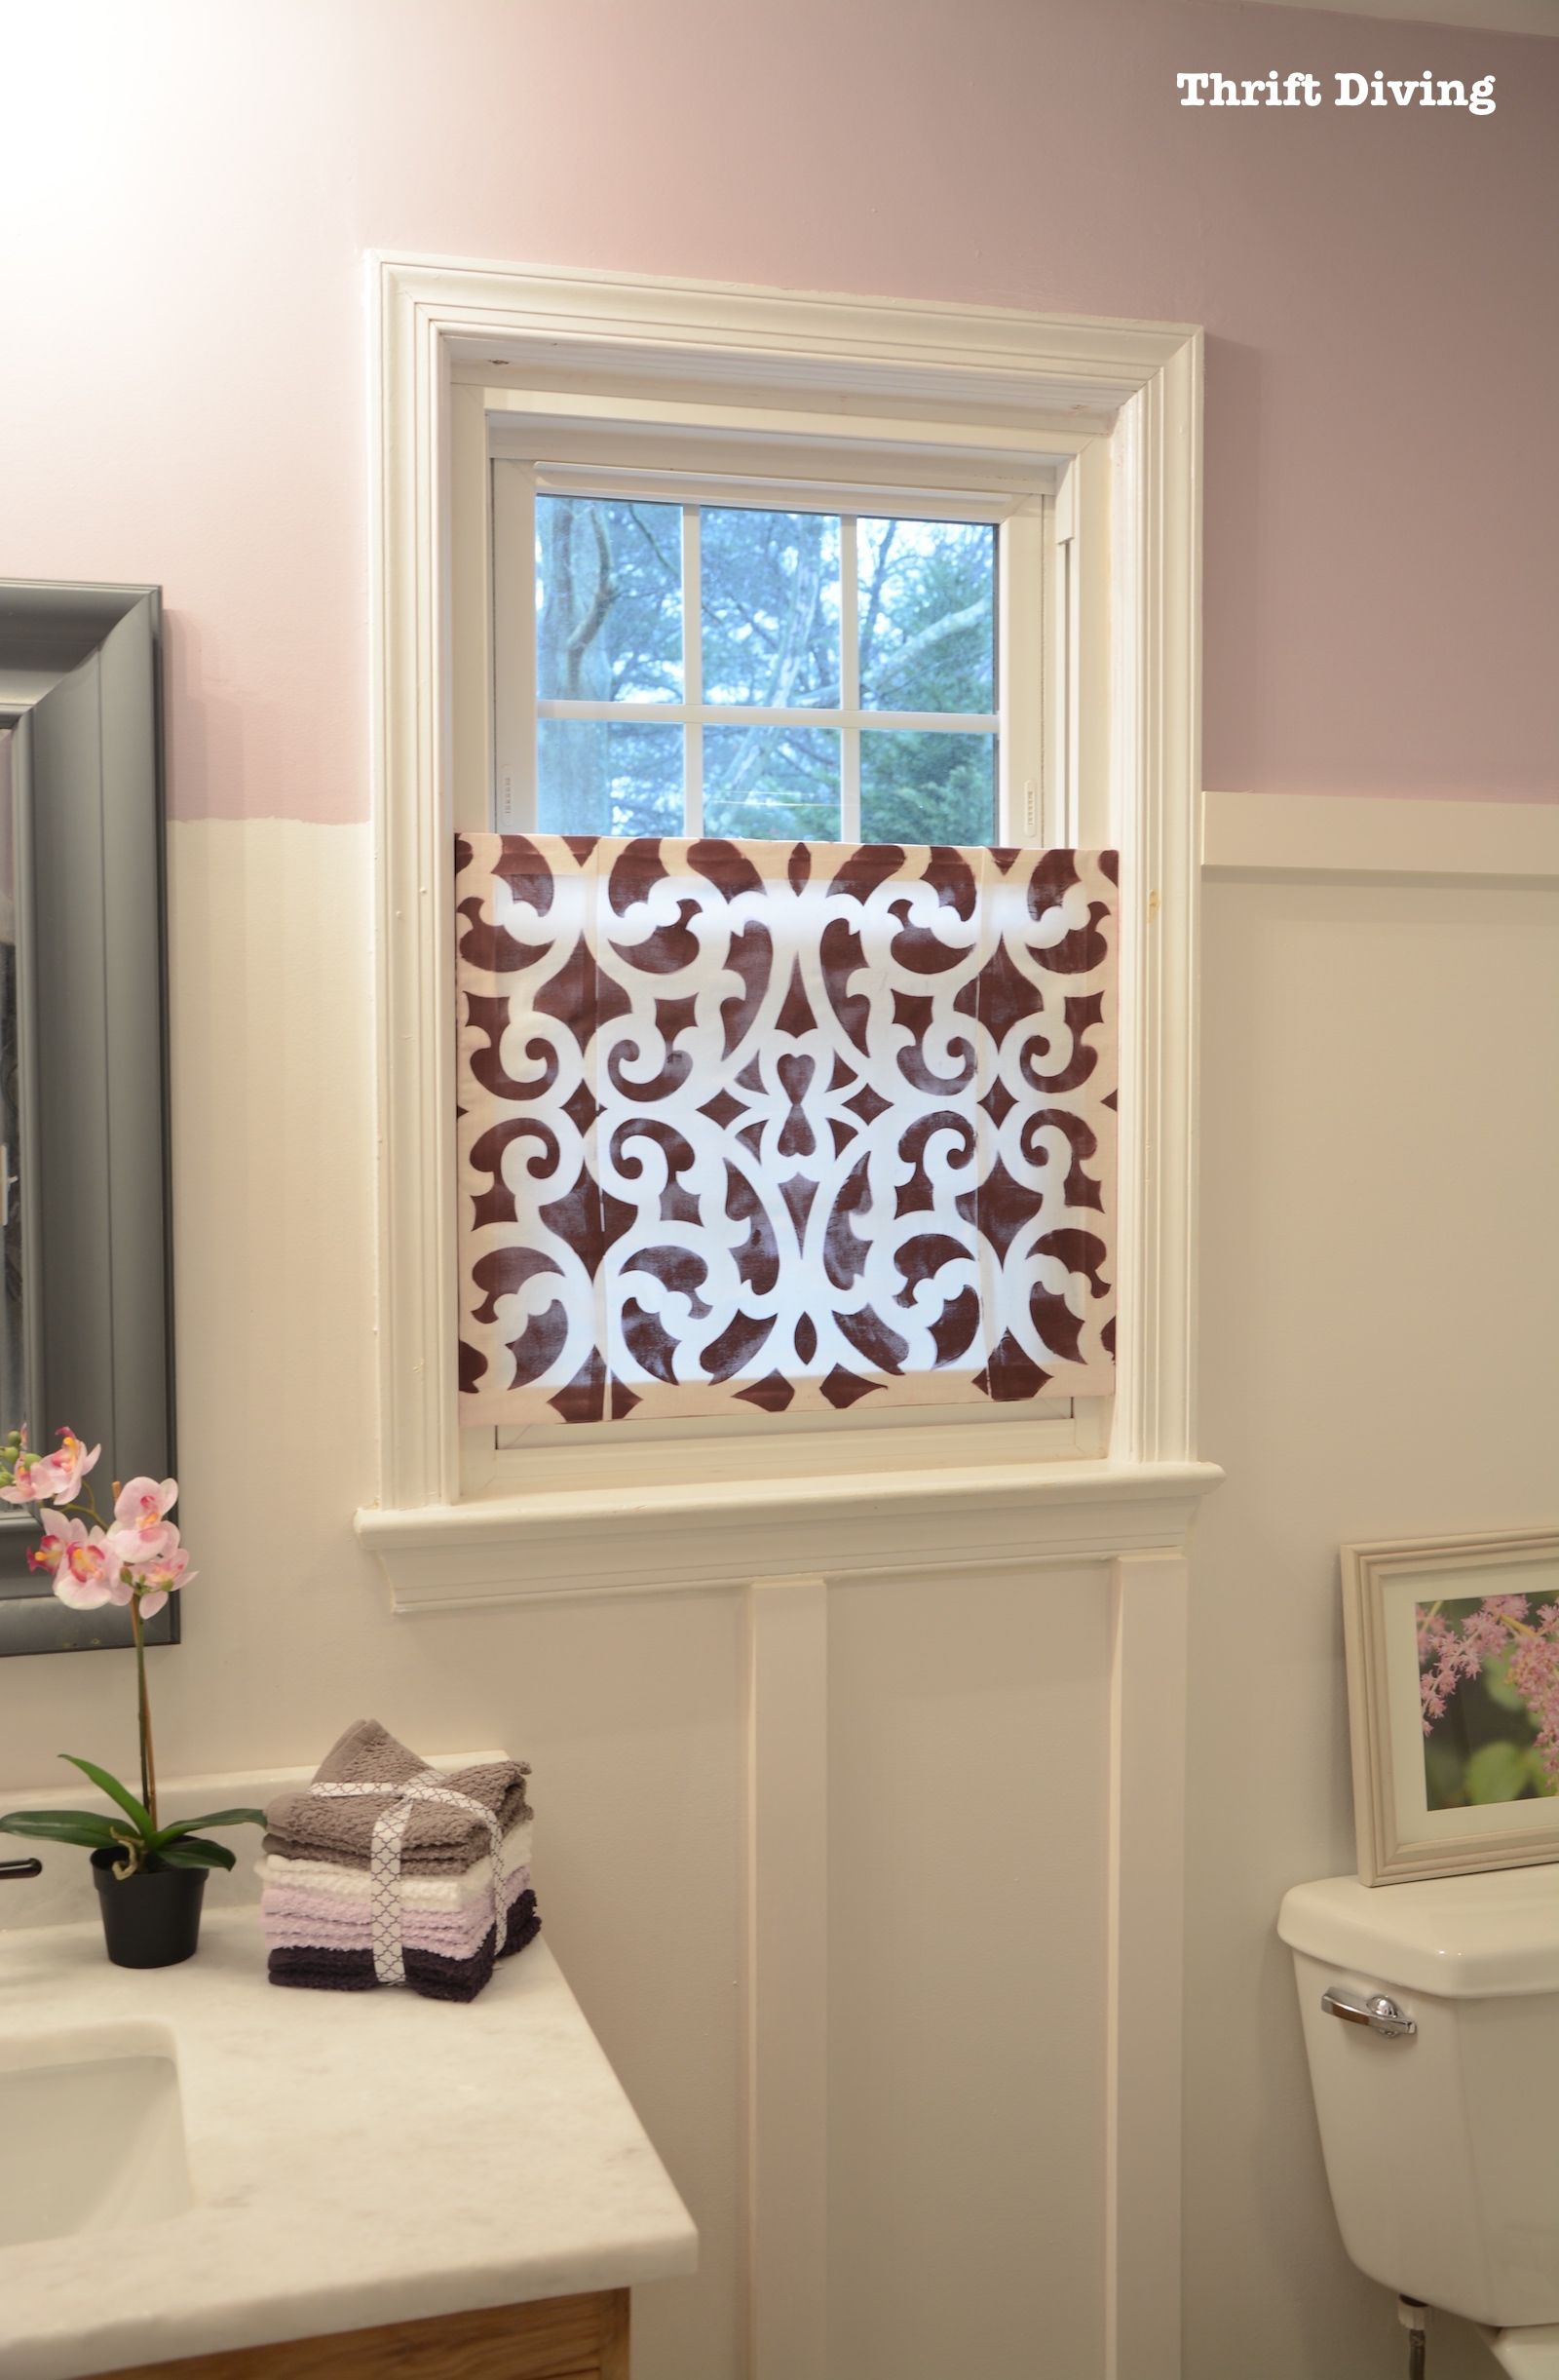 How To Make Diy Privacy Screen For Window Thrift Diving Blog